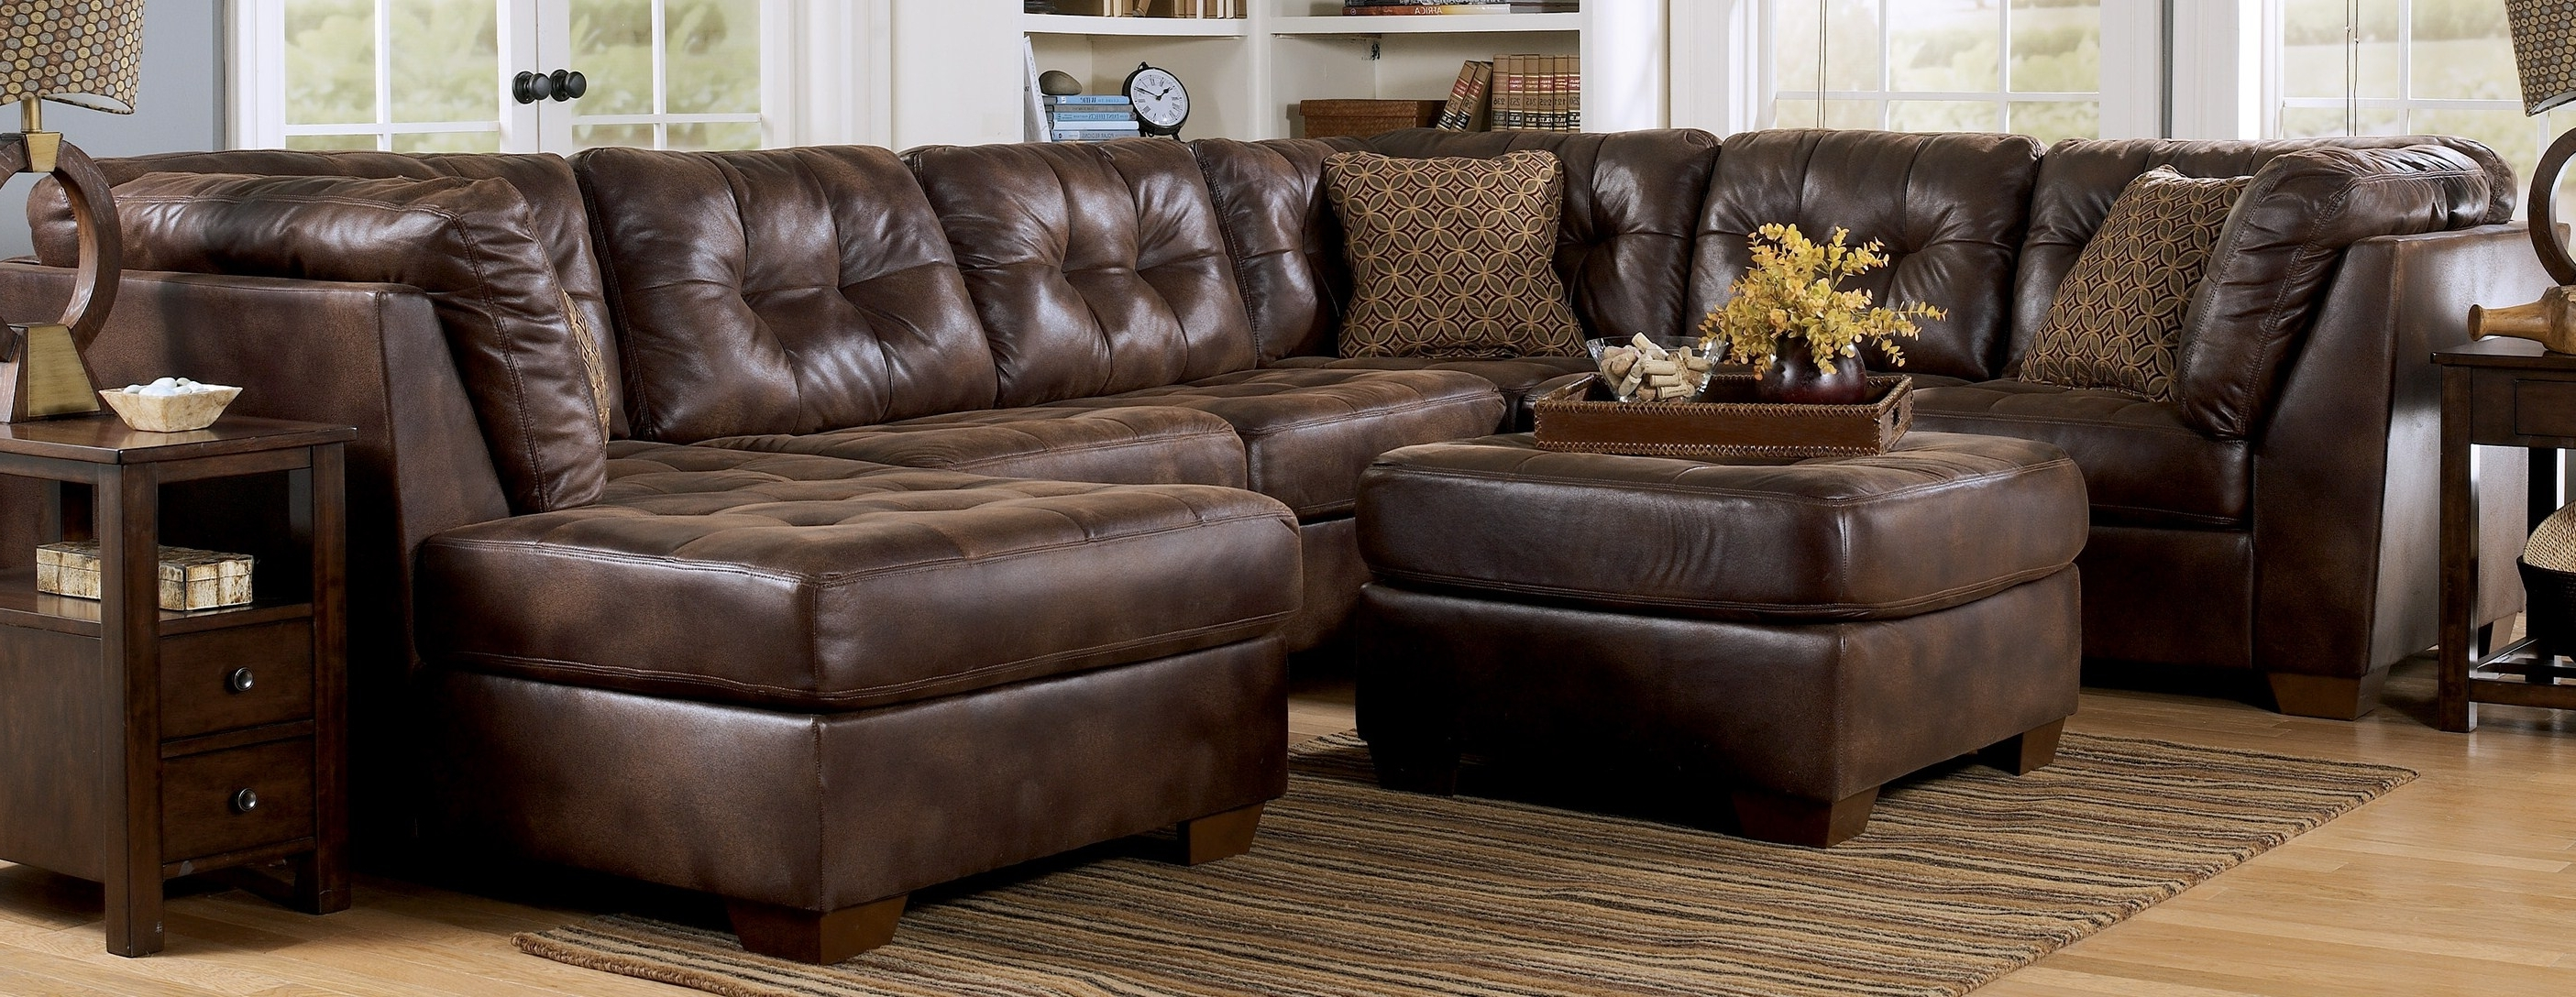 Current My Parents Have This Couch, And Now We're Saving For It! Its Sooo Inside Sectional Sleeper Sofas With Ottoman (View 13 of 15)